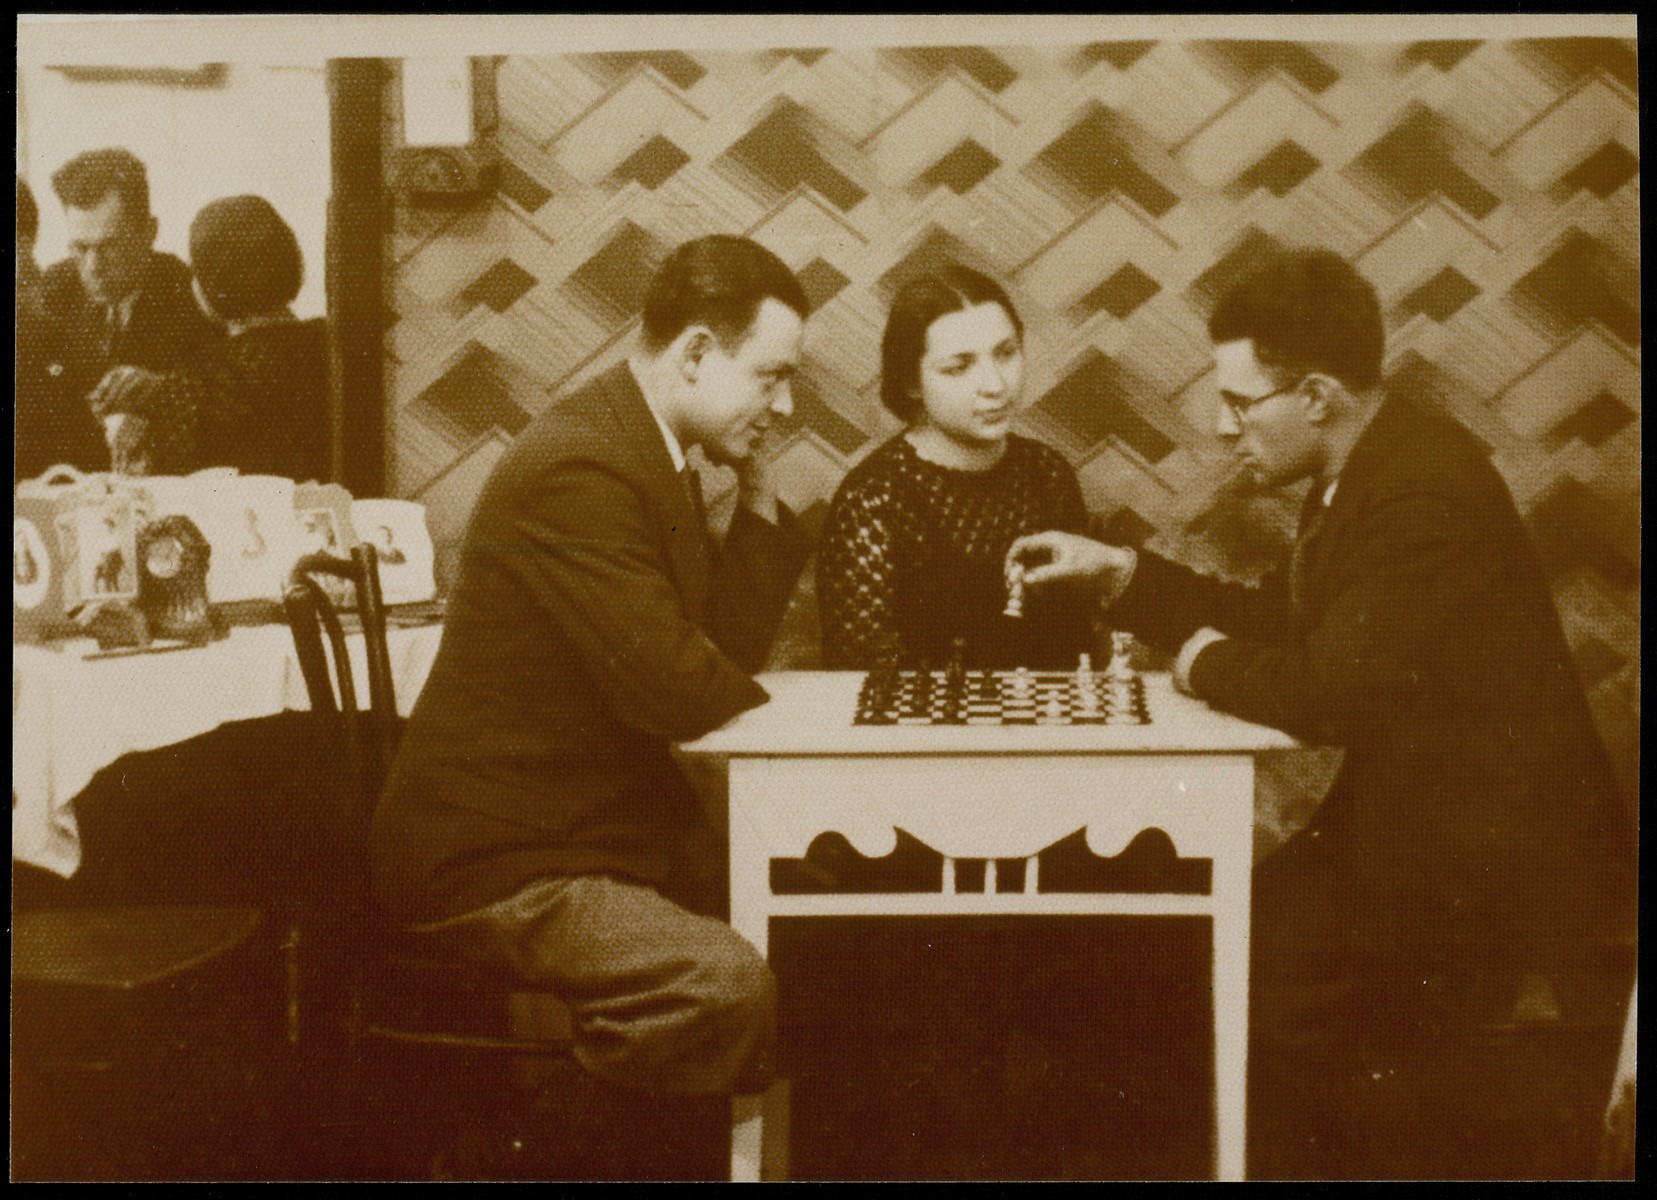 Two men play chess while Malka Matikanski looks on.  Malka Matikanski sitting in the center and Velvke Kaganowicz is on the right.  The man on the left is unidentified.  The photograph was taken in the photographer's house on Vilna Street.  Malka Matikanski  immigrated to Palestine.  Velvke Kaganowicz, his wife and children were murdered by the Germans during the September 1941 killing action in Eisiskes.